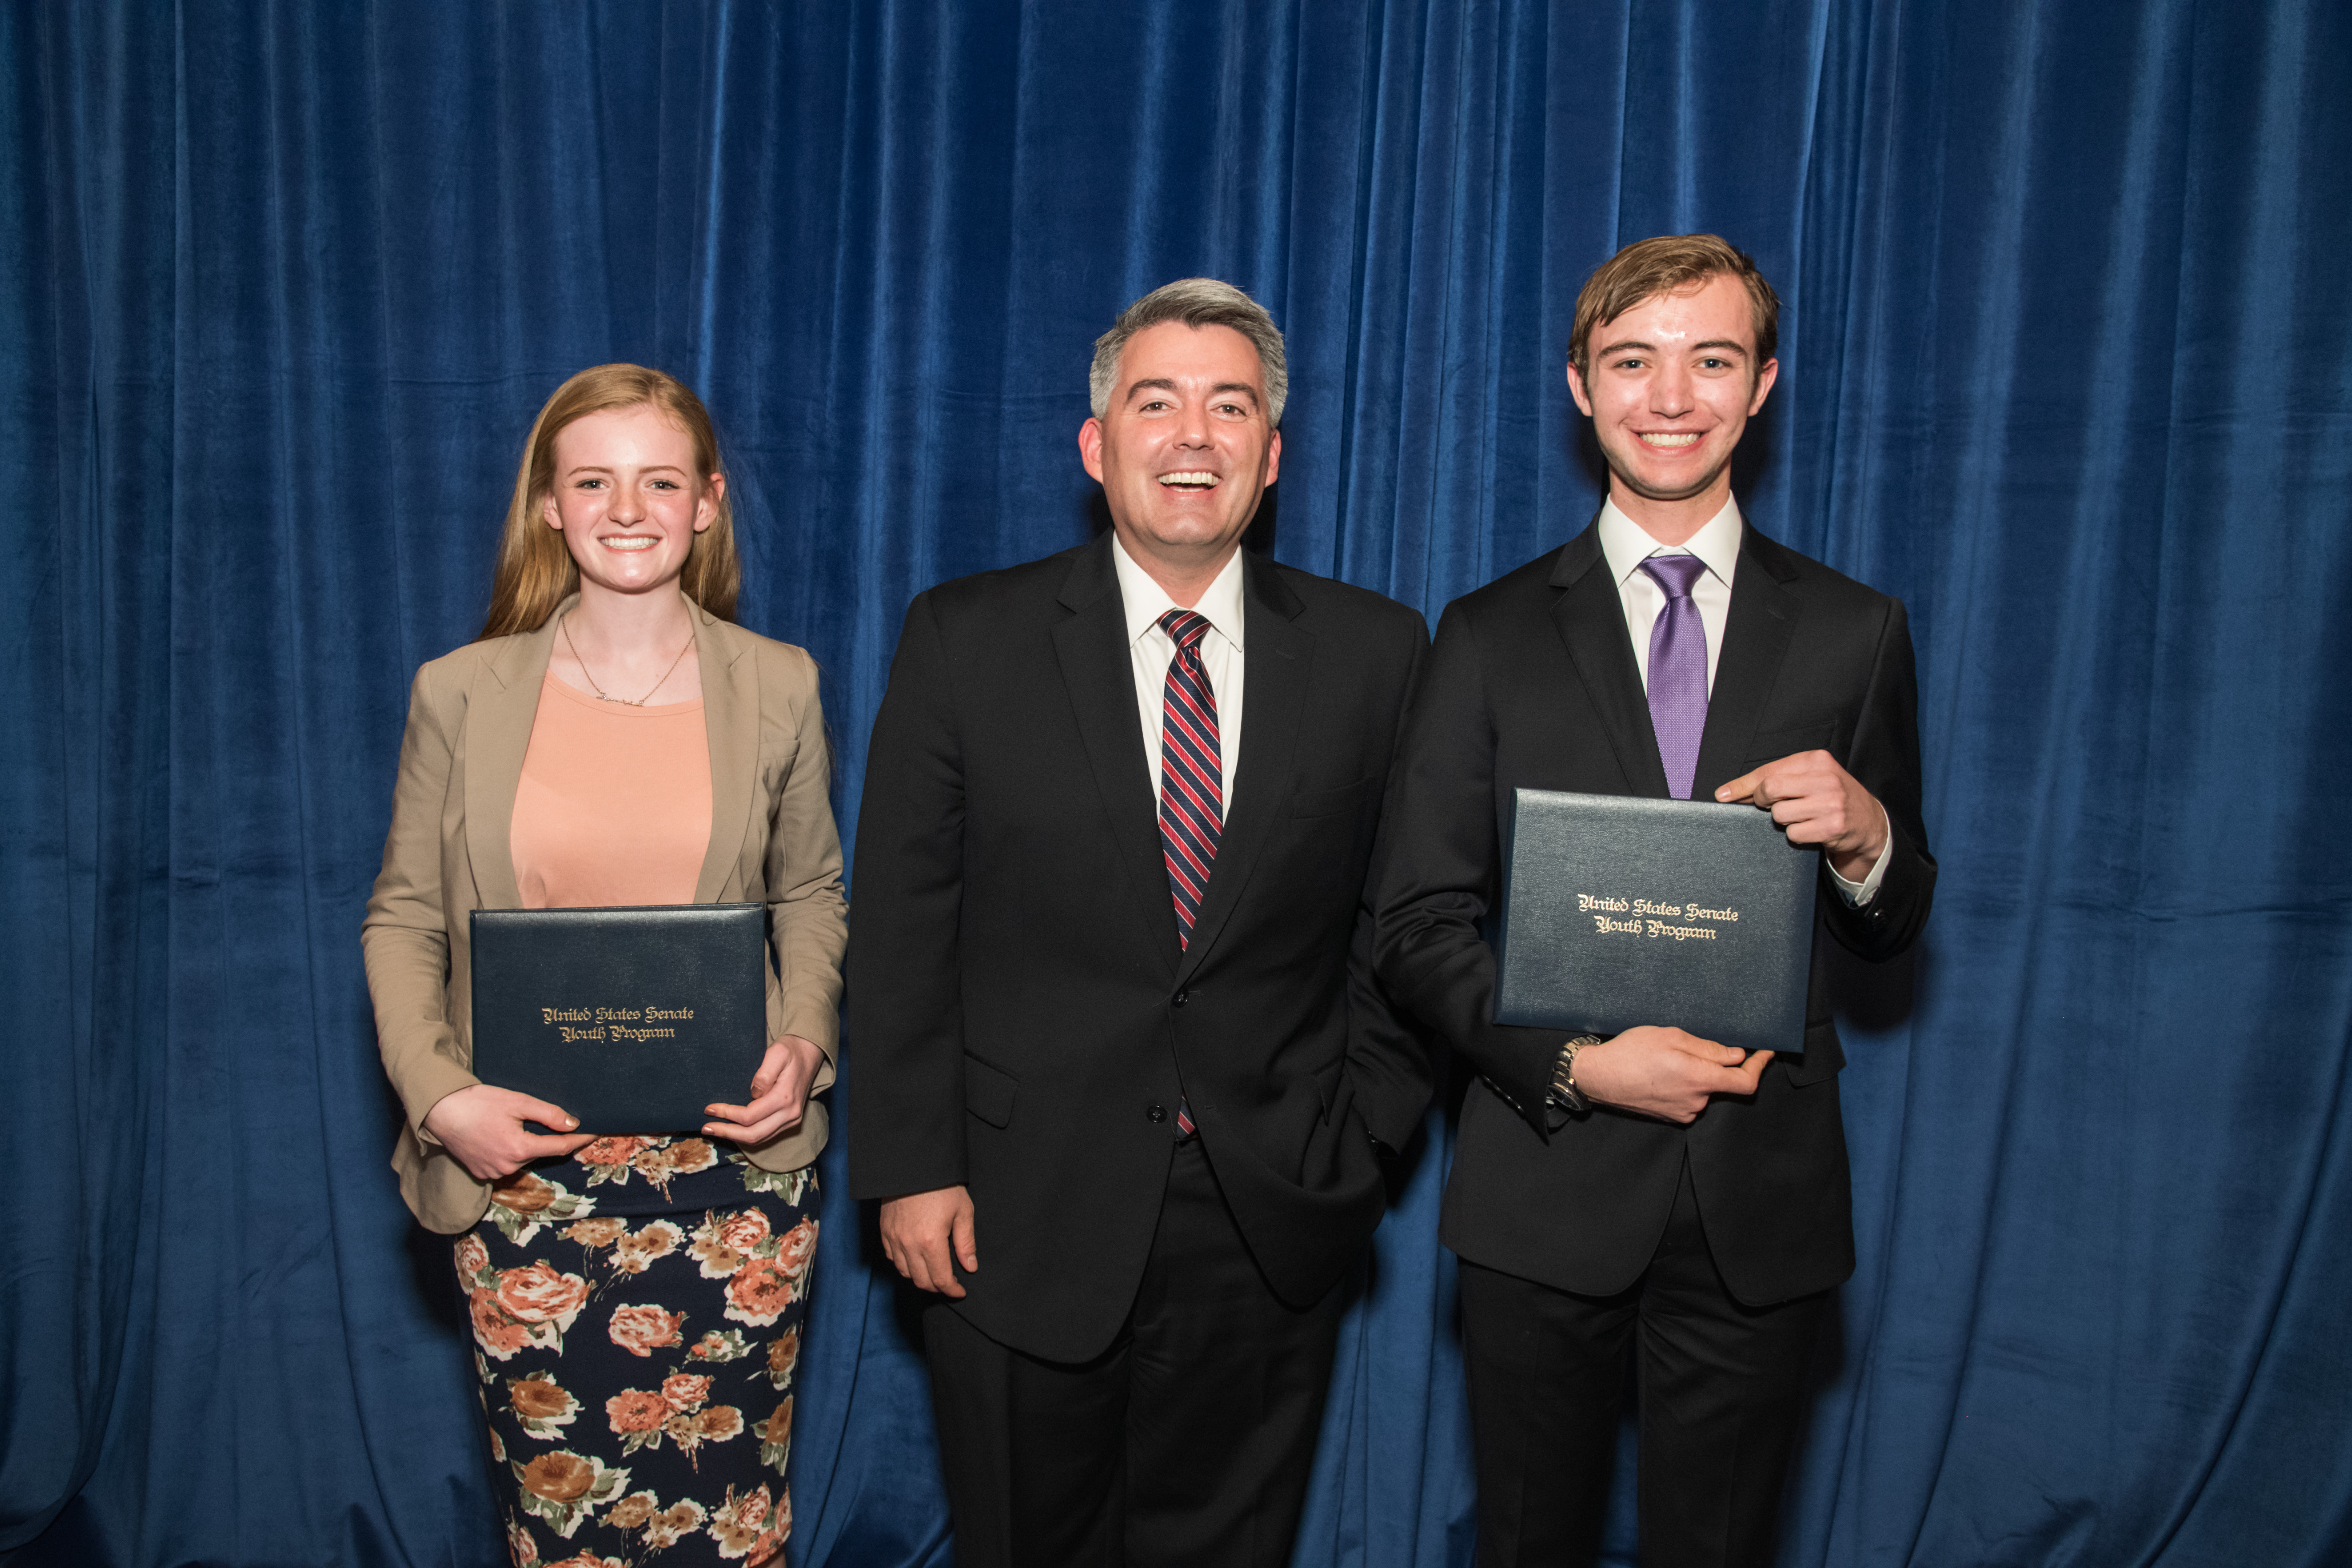 Congressman Cory Gardner with Senate Youth Delegates Anne Marie Ackerman and Ethan Wearner.